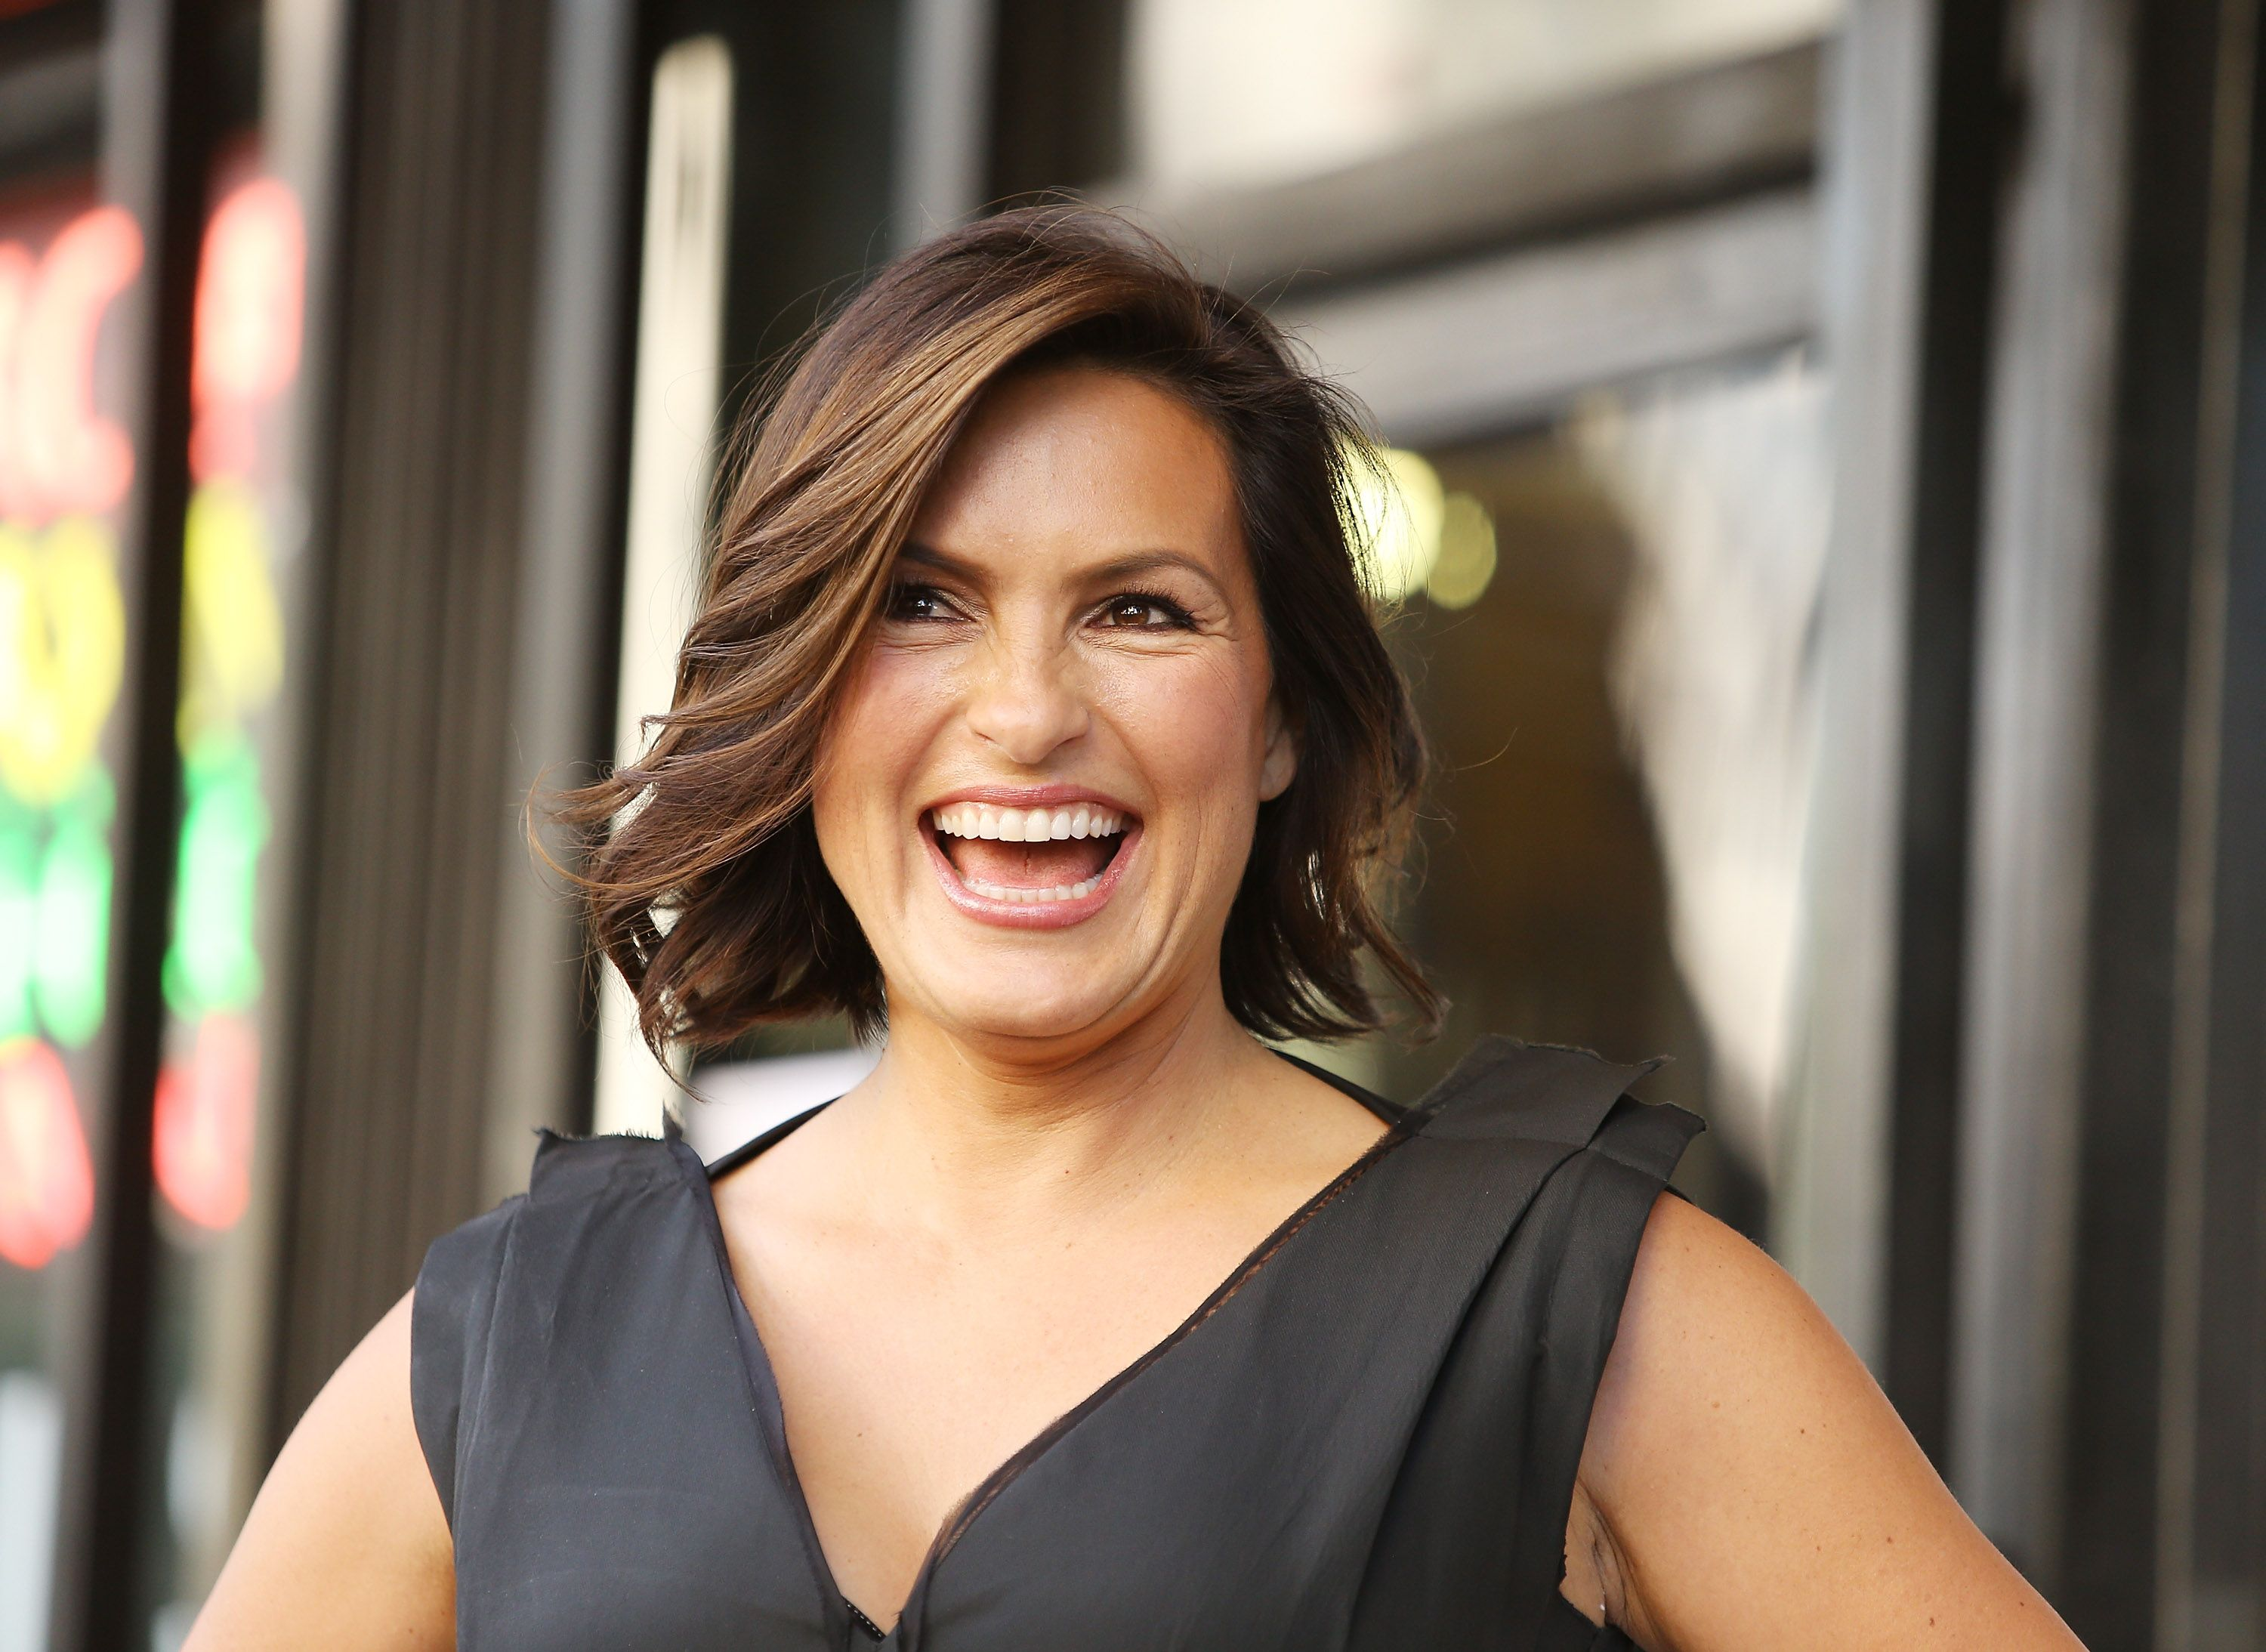 Mariska Hargitay at the ceremony honoring her with a Star on The Hollywood Walk of Fame on November 8, 2013 in Hollywood, California | Photo: Getty Images